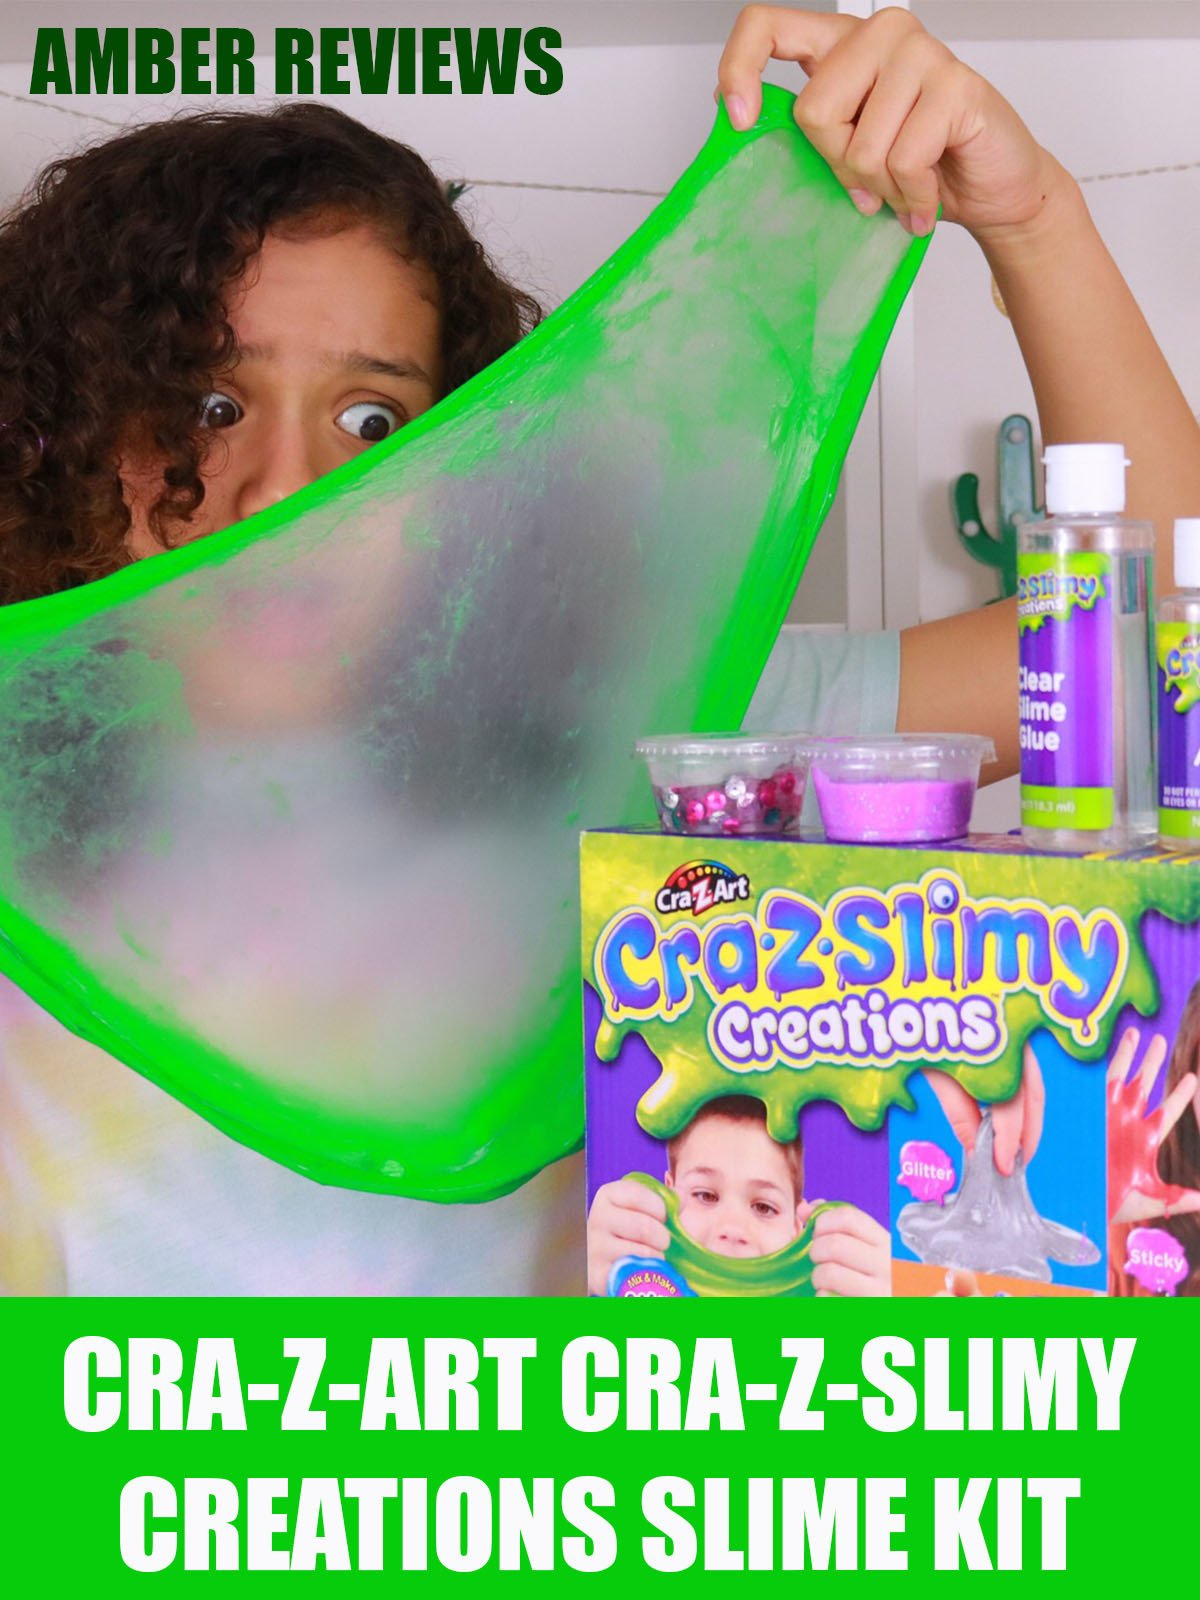 Amber Reviews Cra-Z-Art Cra-Z-Slimy Creation Slime Kit